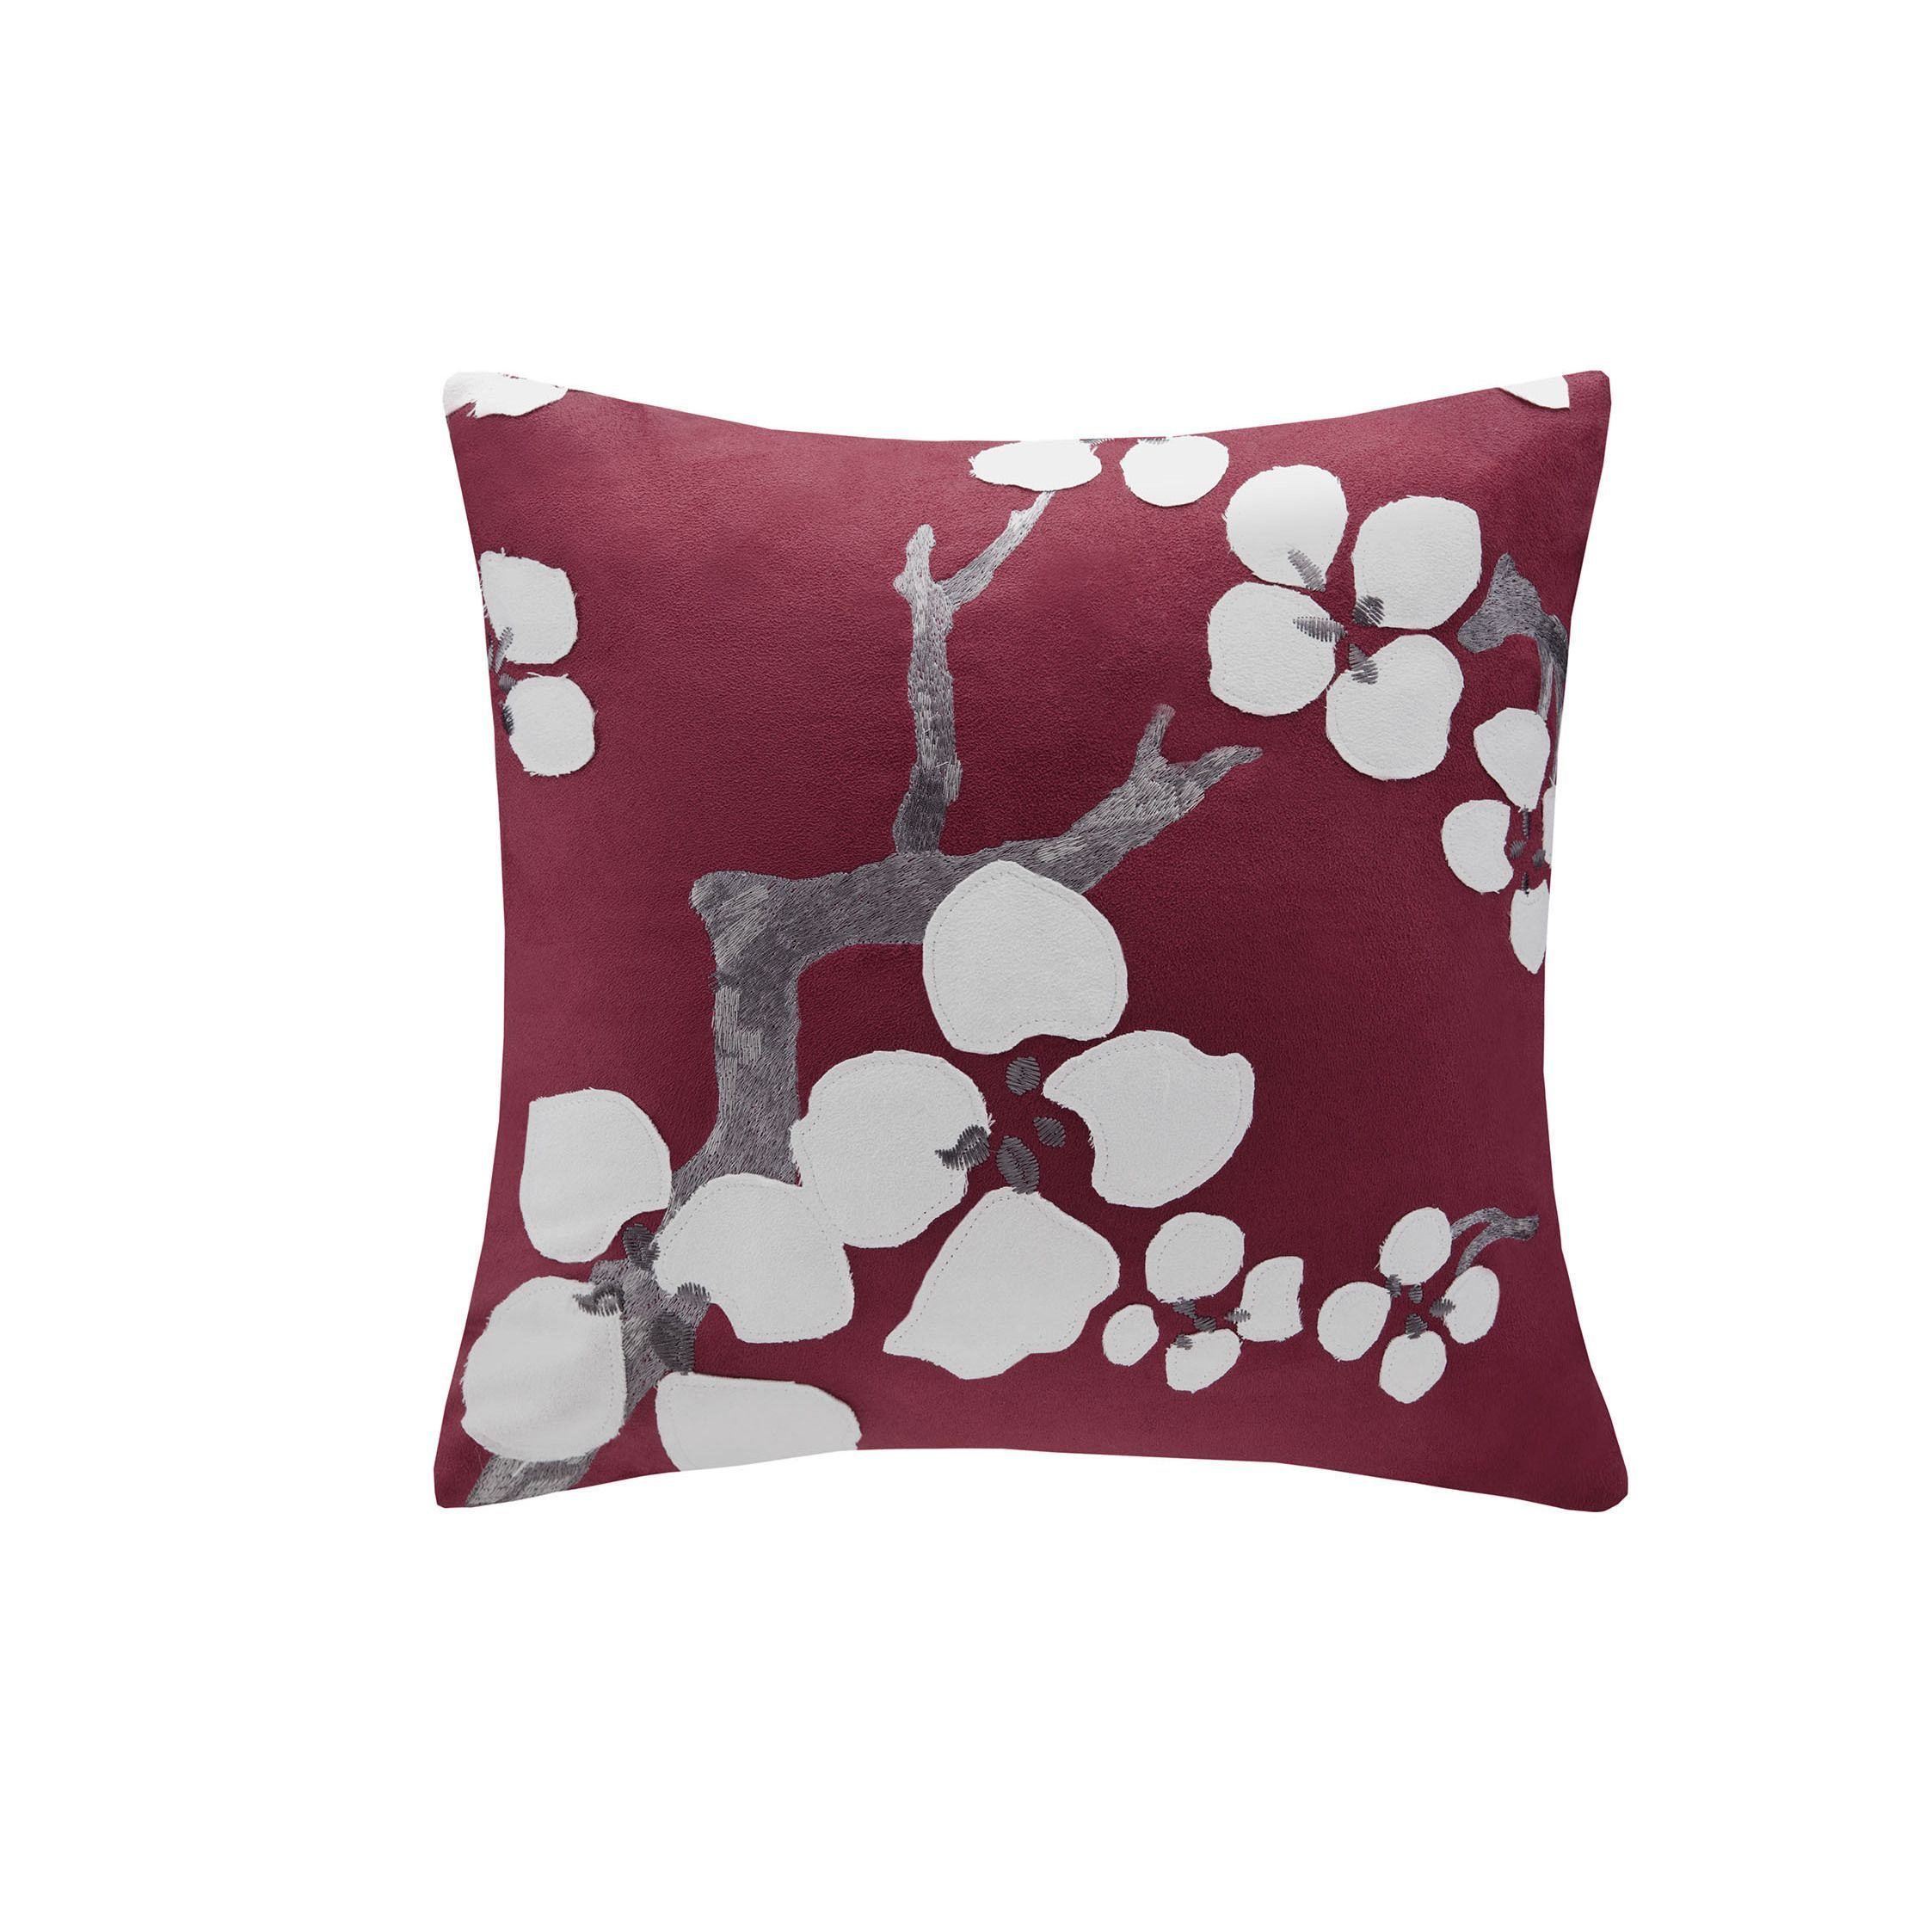 N Natori Cherry Blossom Red Square Pillow (18x18-Red), Size 18 x 18 (Polyester, Applique)